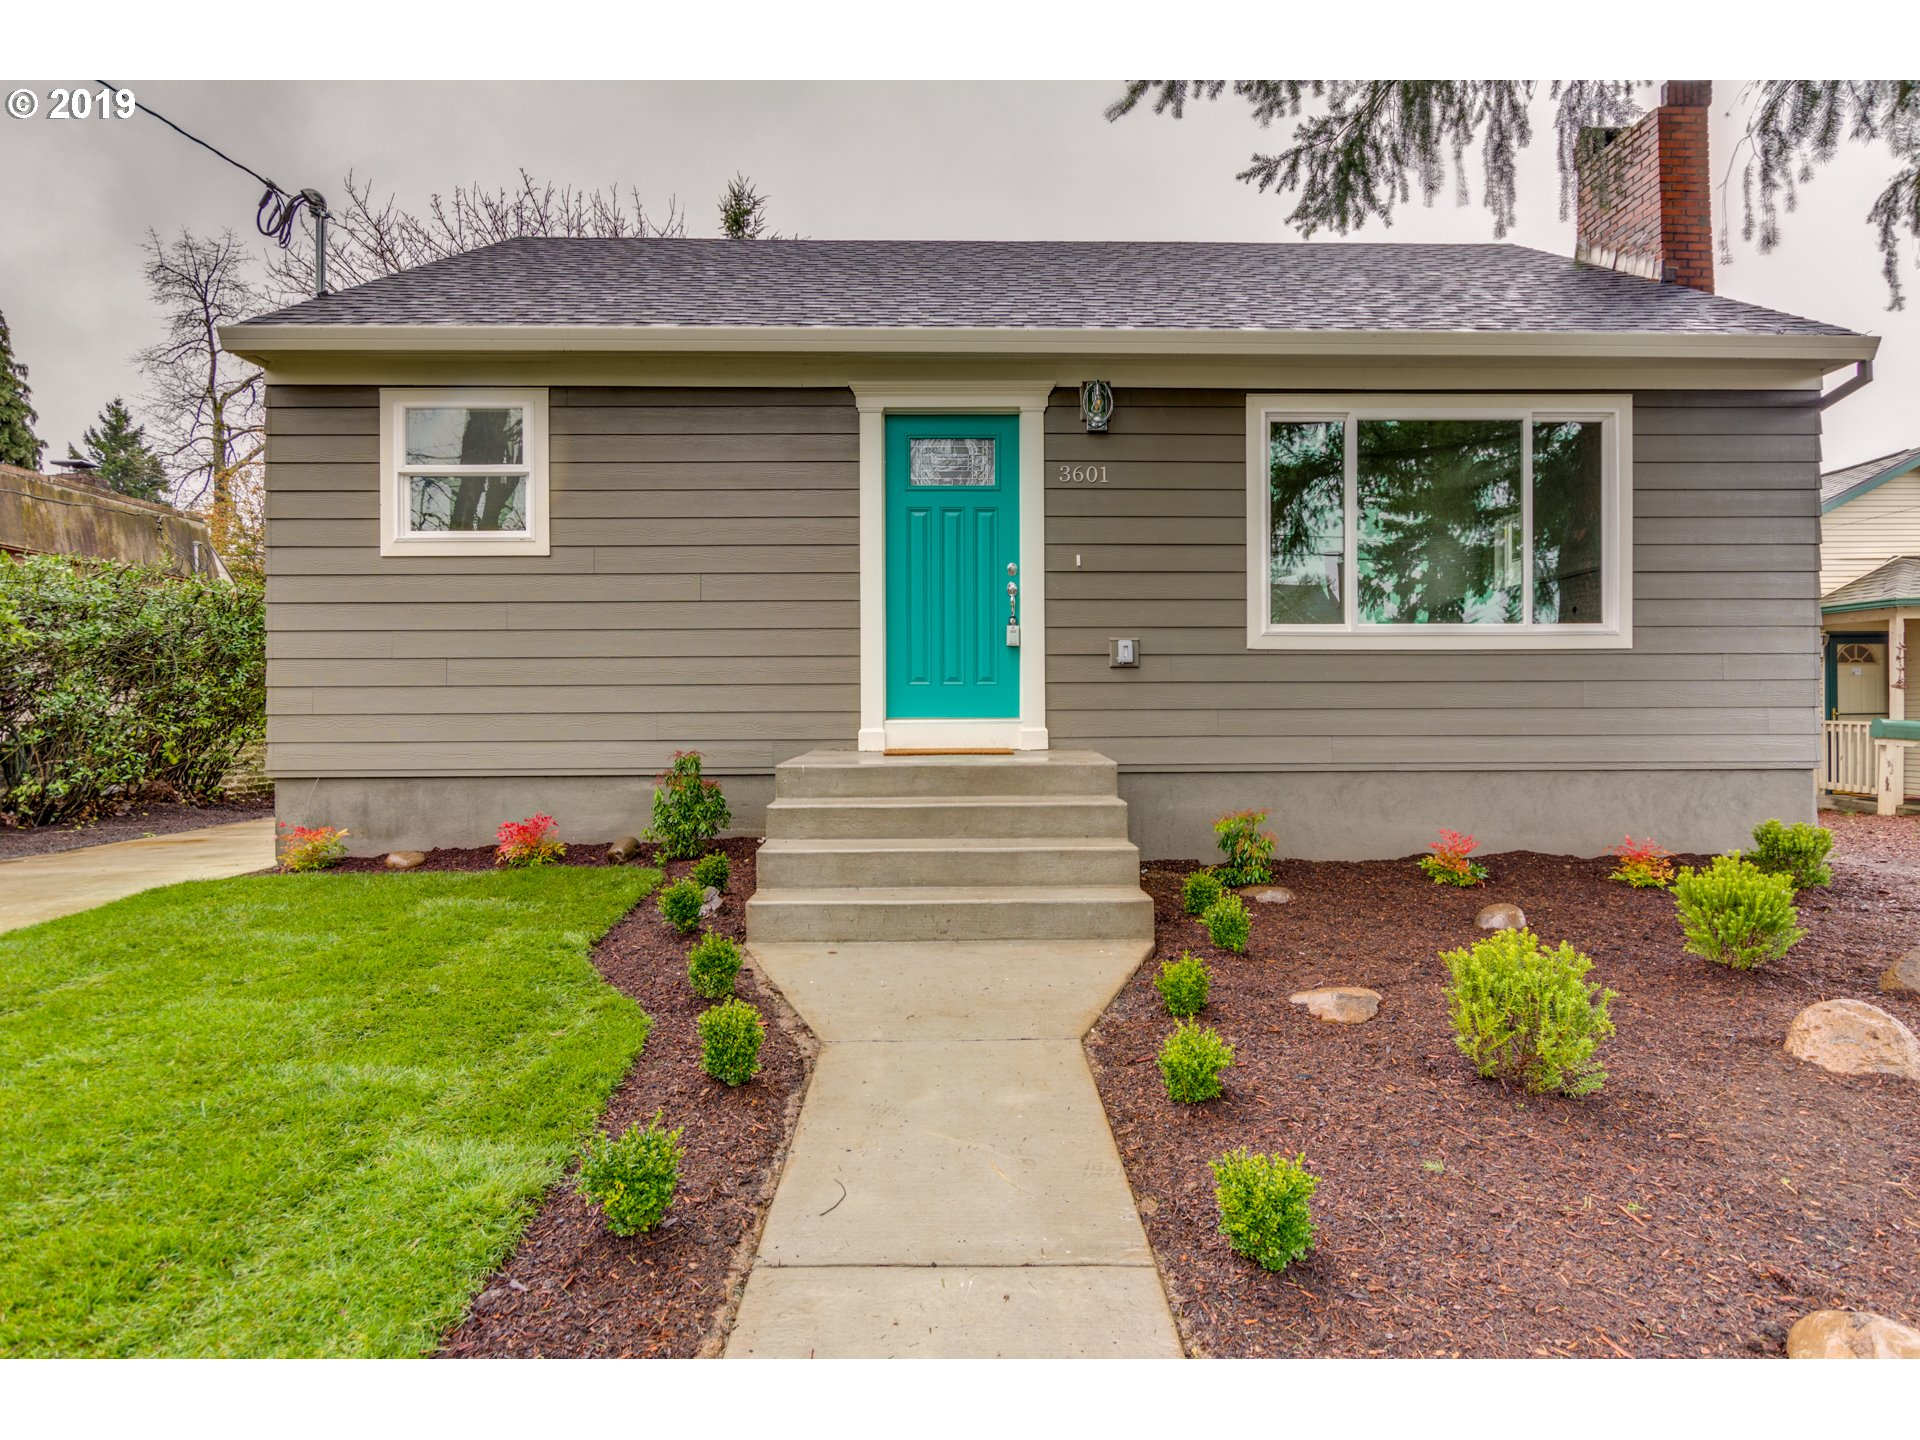 Welcome to a cute Cape Cod in Portland's desirable Roseway neighborhood. Professionally remodeled, this home allows you to move in and spend your time on personal pleasures, not home projects. Each floor includes at least one bedroom, bathroom and living area, giving you considerable flexibility of use and lifestyle.  Plant a garden or set up room to play in the big back yard and enjoy easy living.